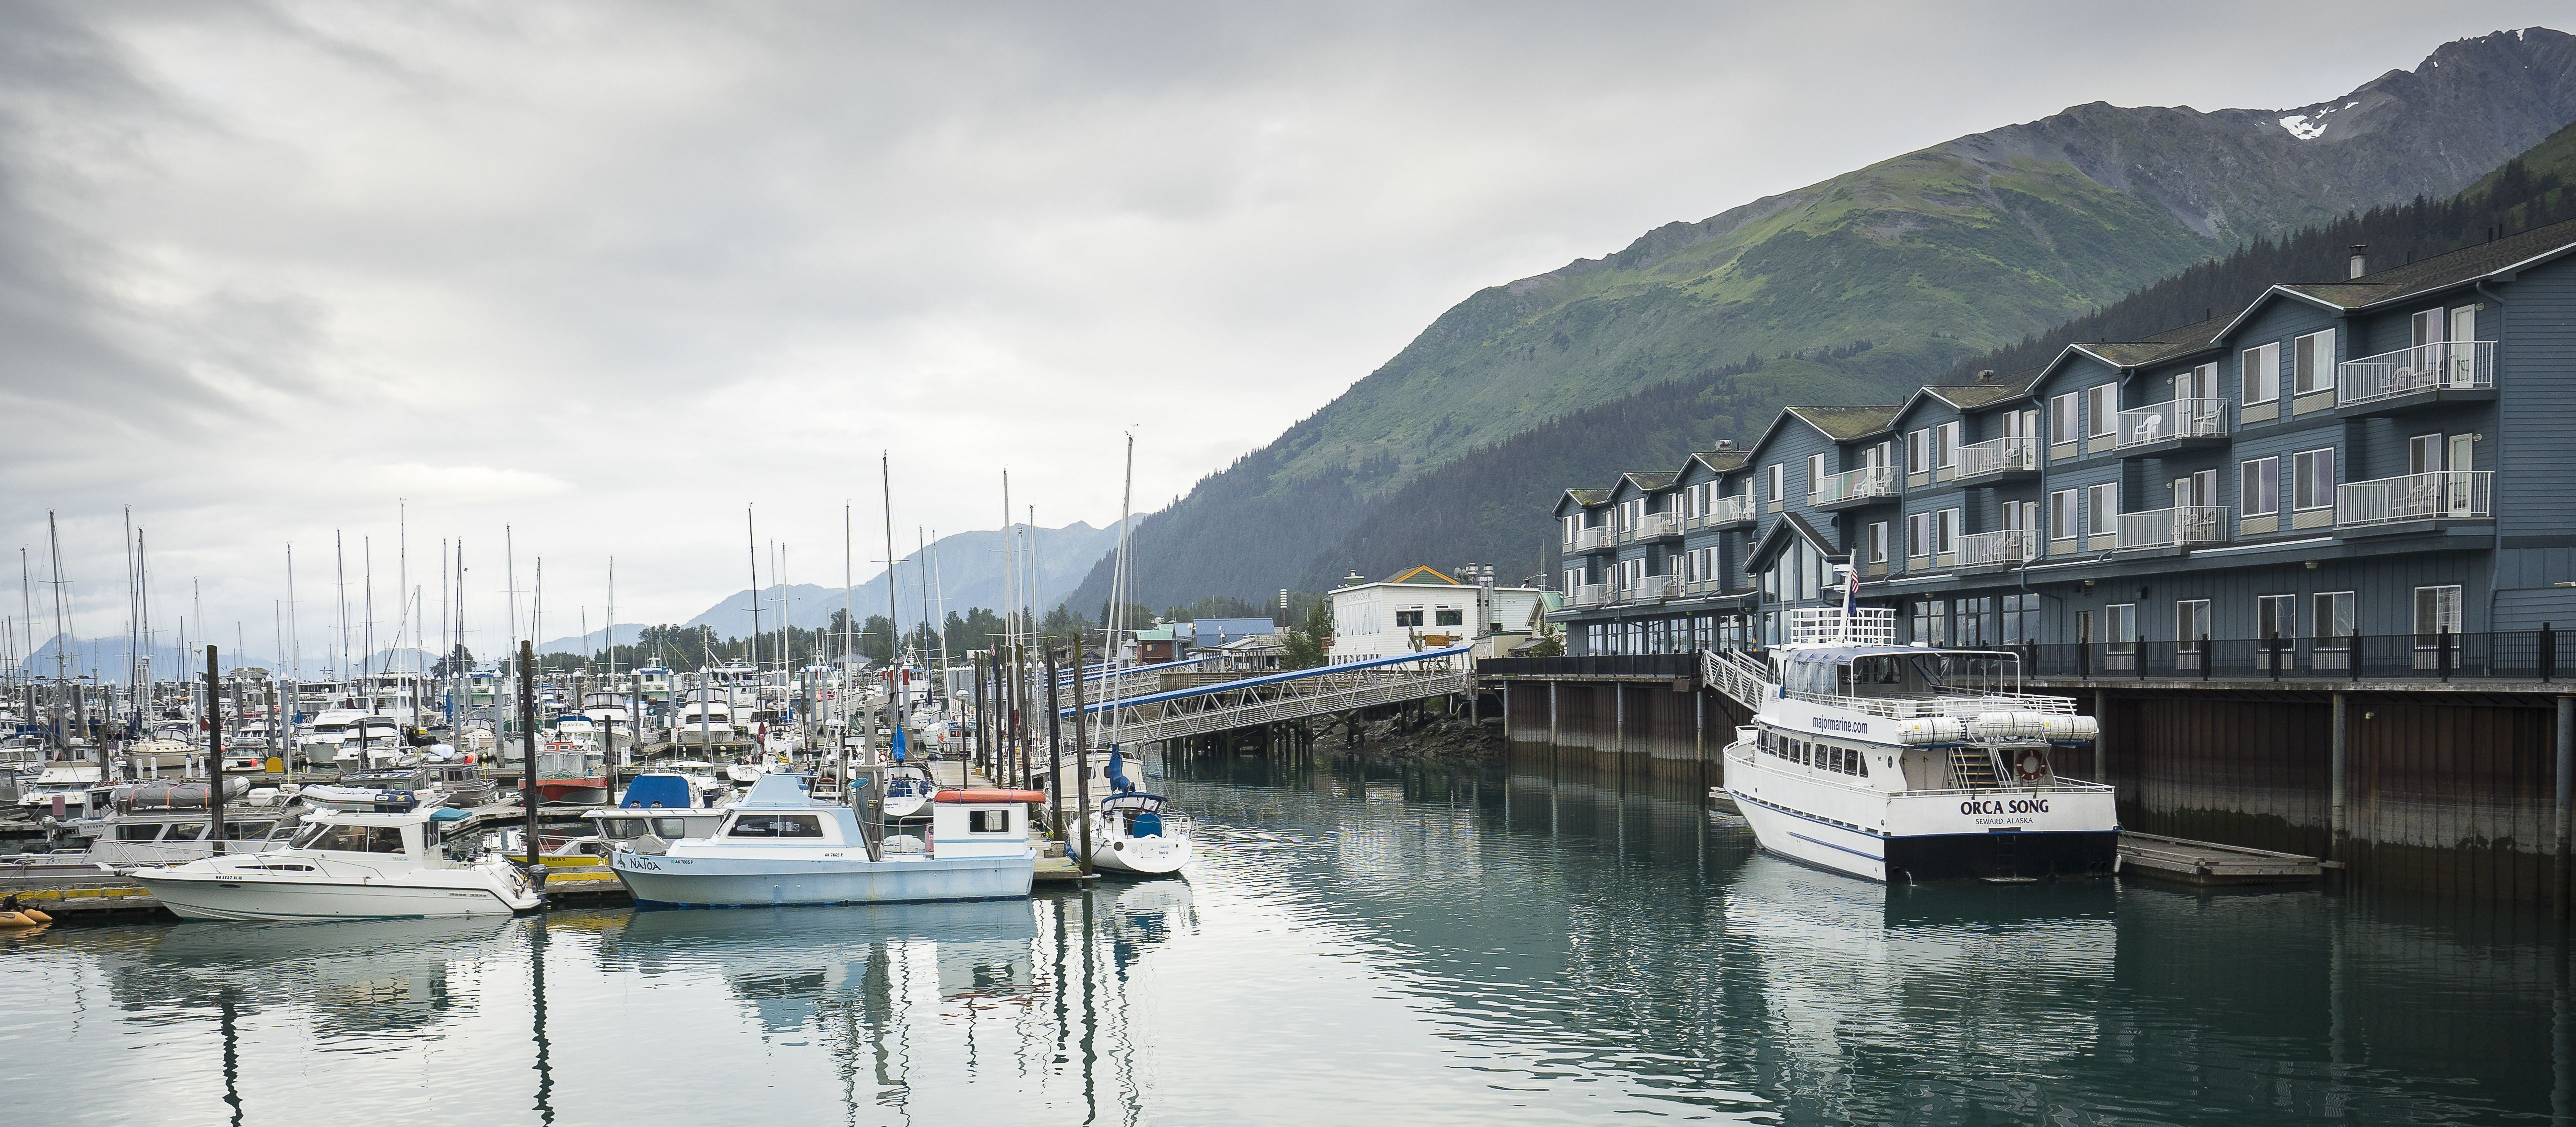 Harbor 360 Hotel Is The Premier Waterfront Hotel In Seward Alaska Located Directly On The Seward Small Boat H Hotel Kenai Fjords National Park Hotel Packages